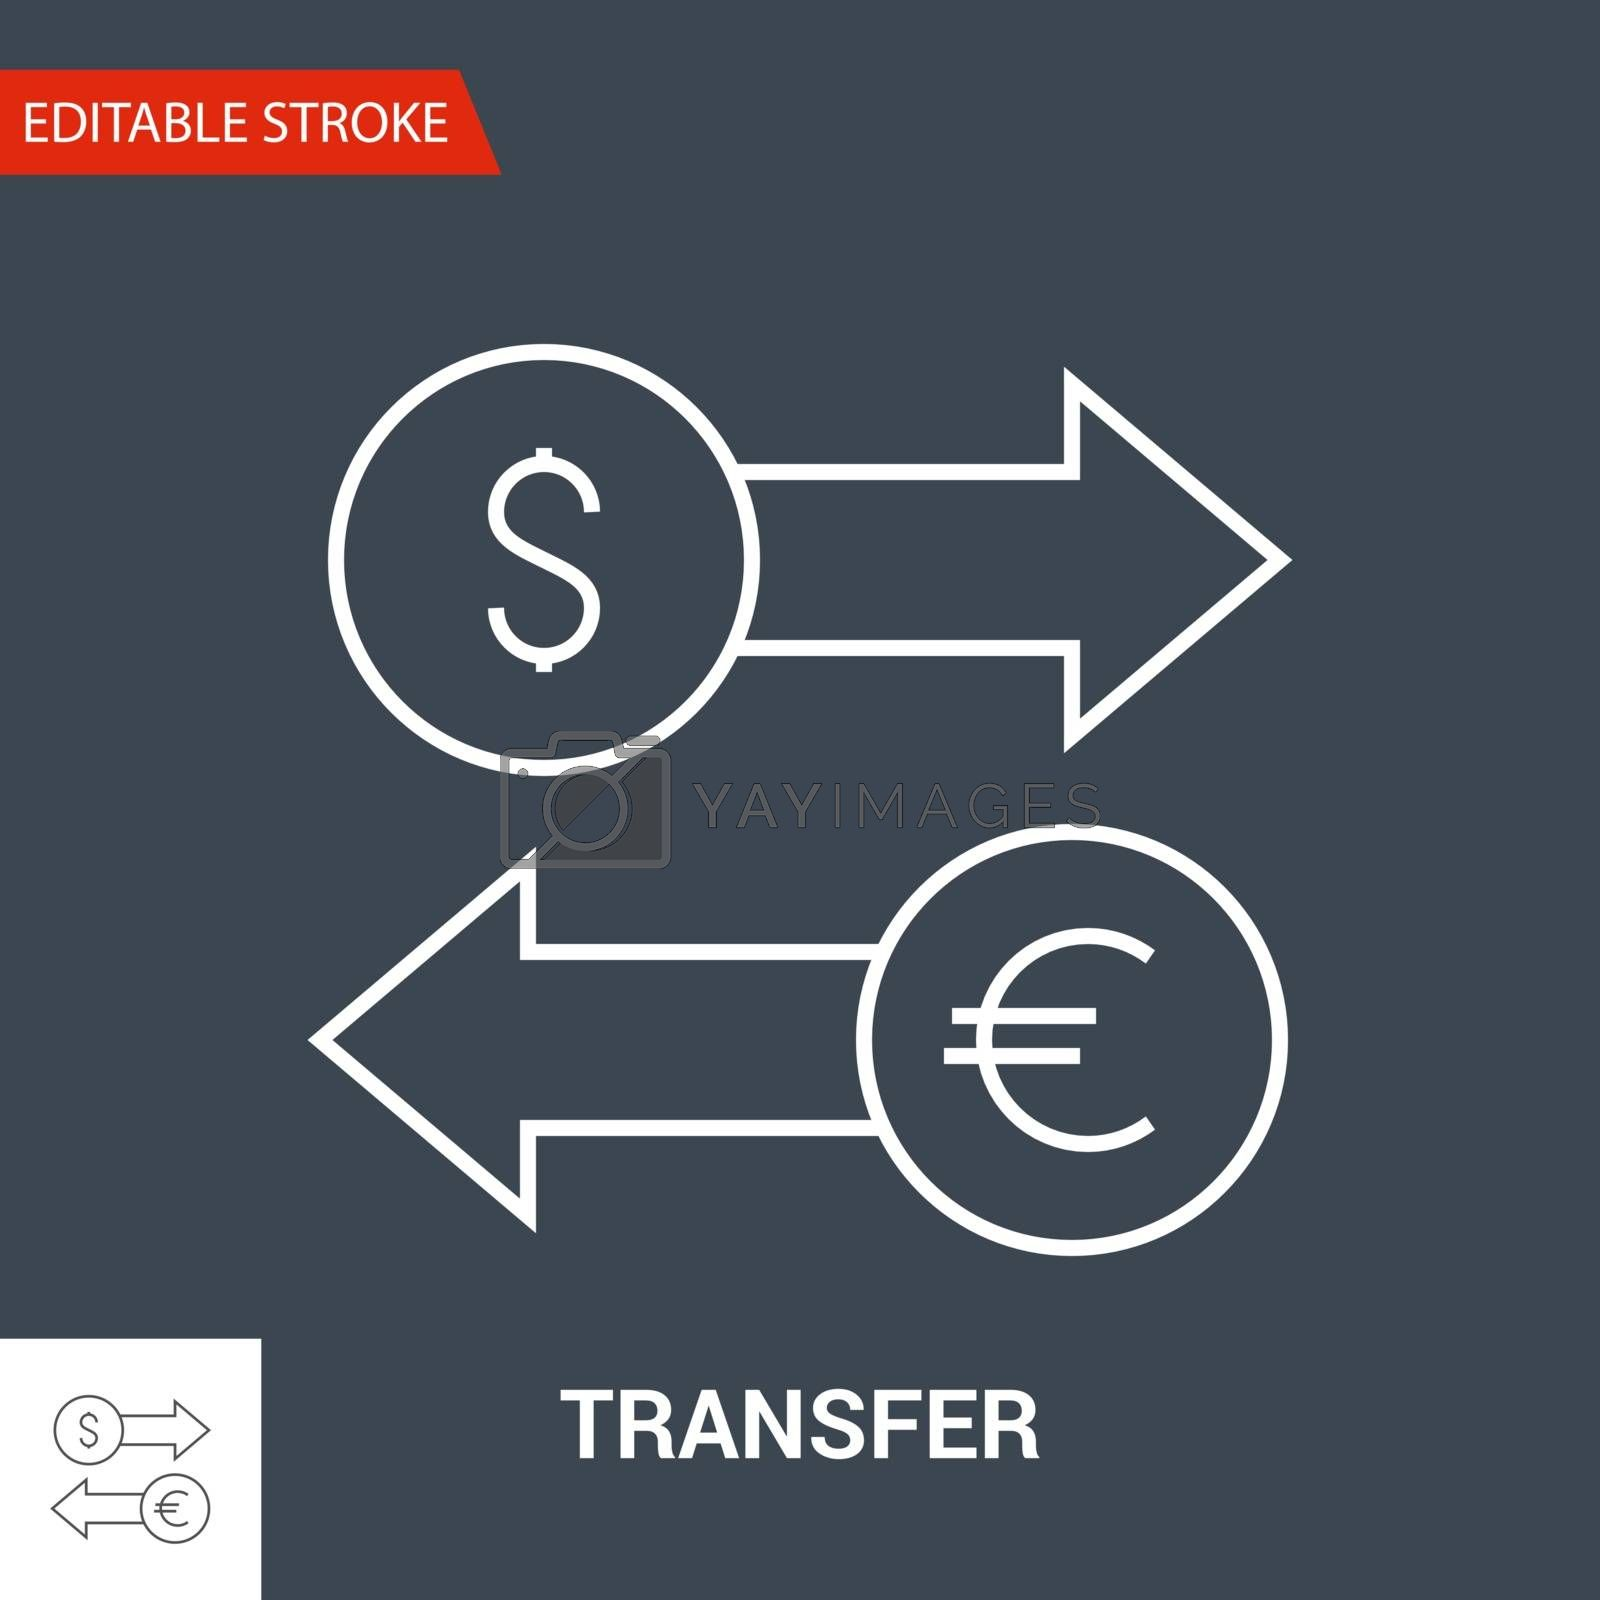 Transfer Icon. Thin Line Vector Illustration. Adjust stroke weight - Expand to any Size - Easy Change Colour - Editable Stroke